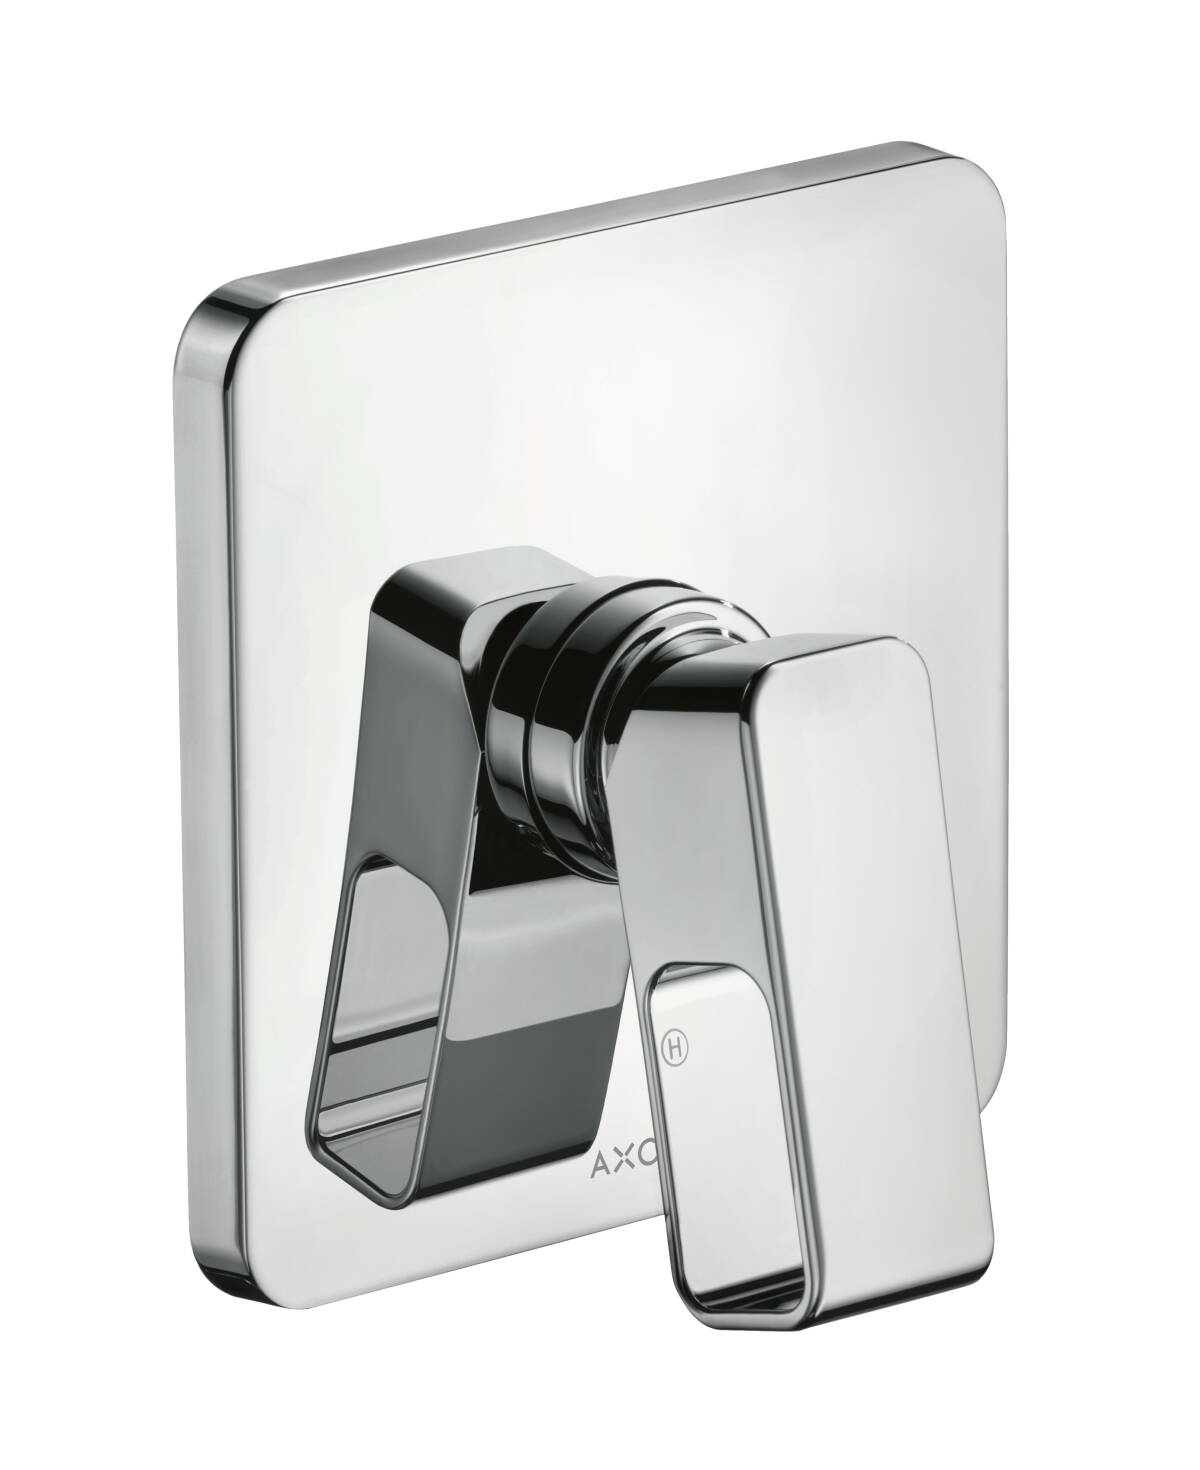 Single lever shower mixer for concealed installation, Chrome, 11625000